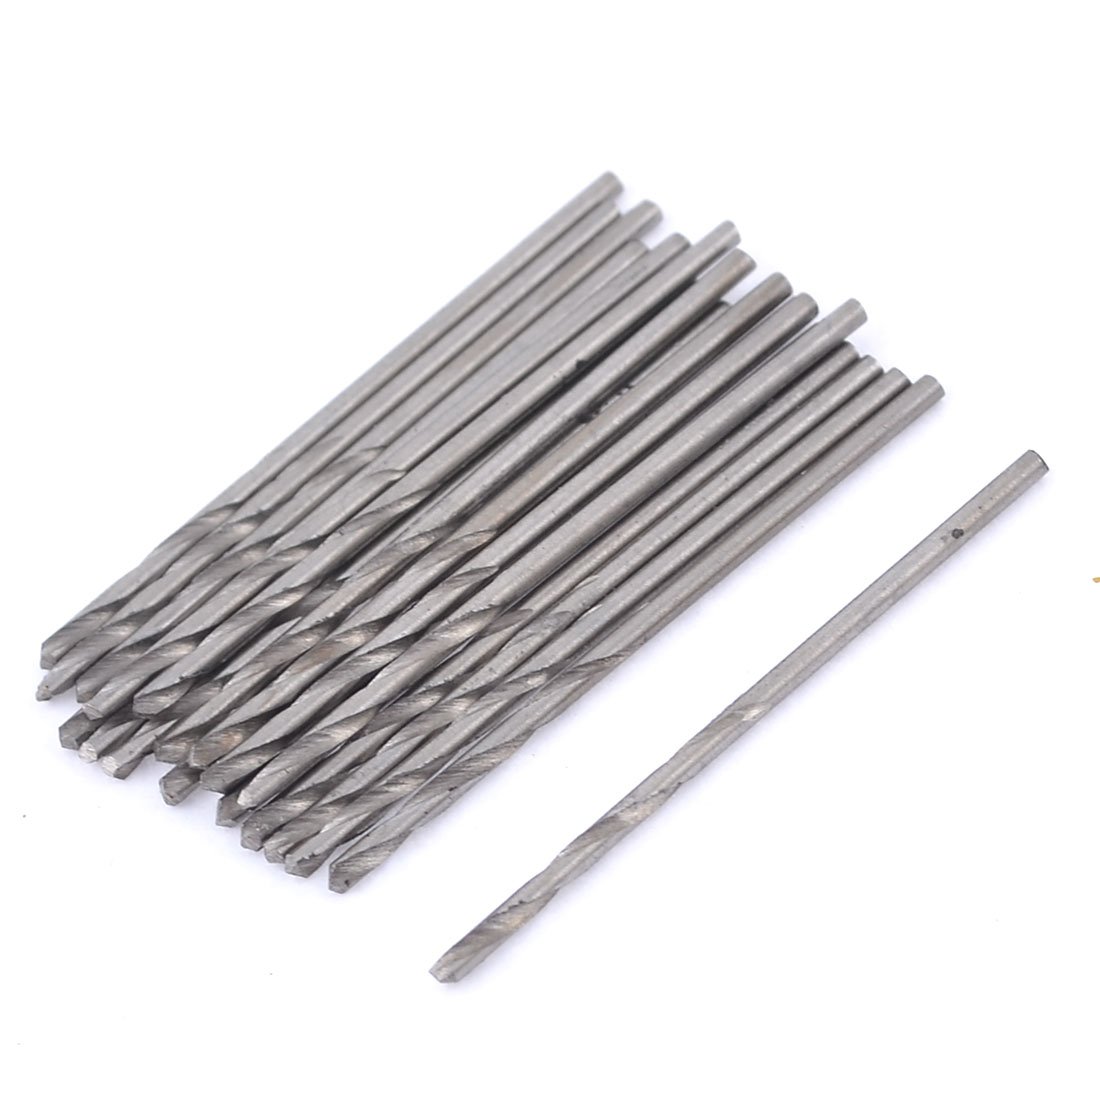 20 Pcs HSS Straight Shank 0.9mm Cutting Diameter Twist Drilling Bit for Electric Drill